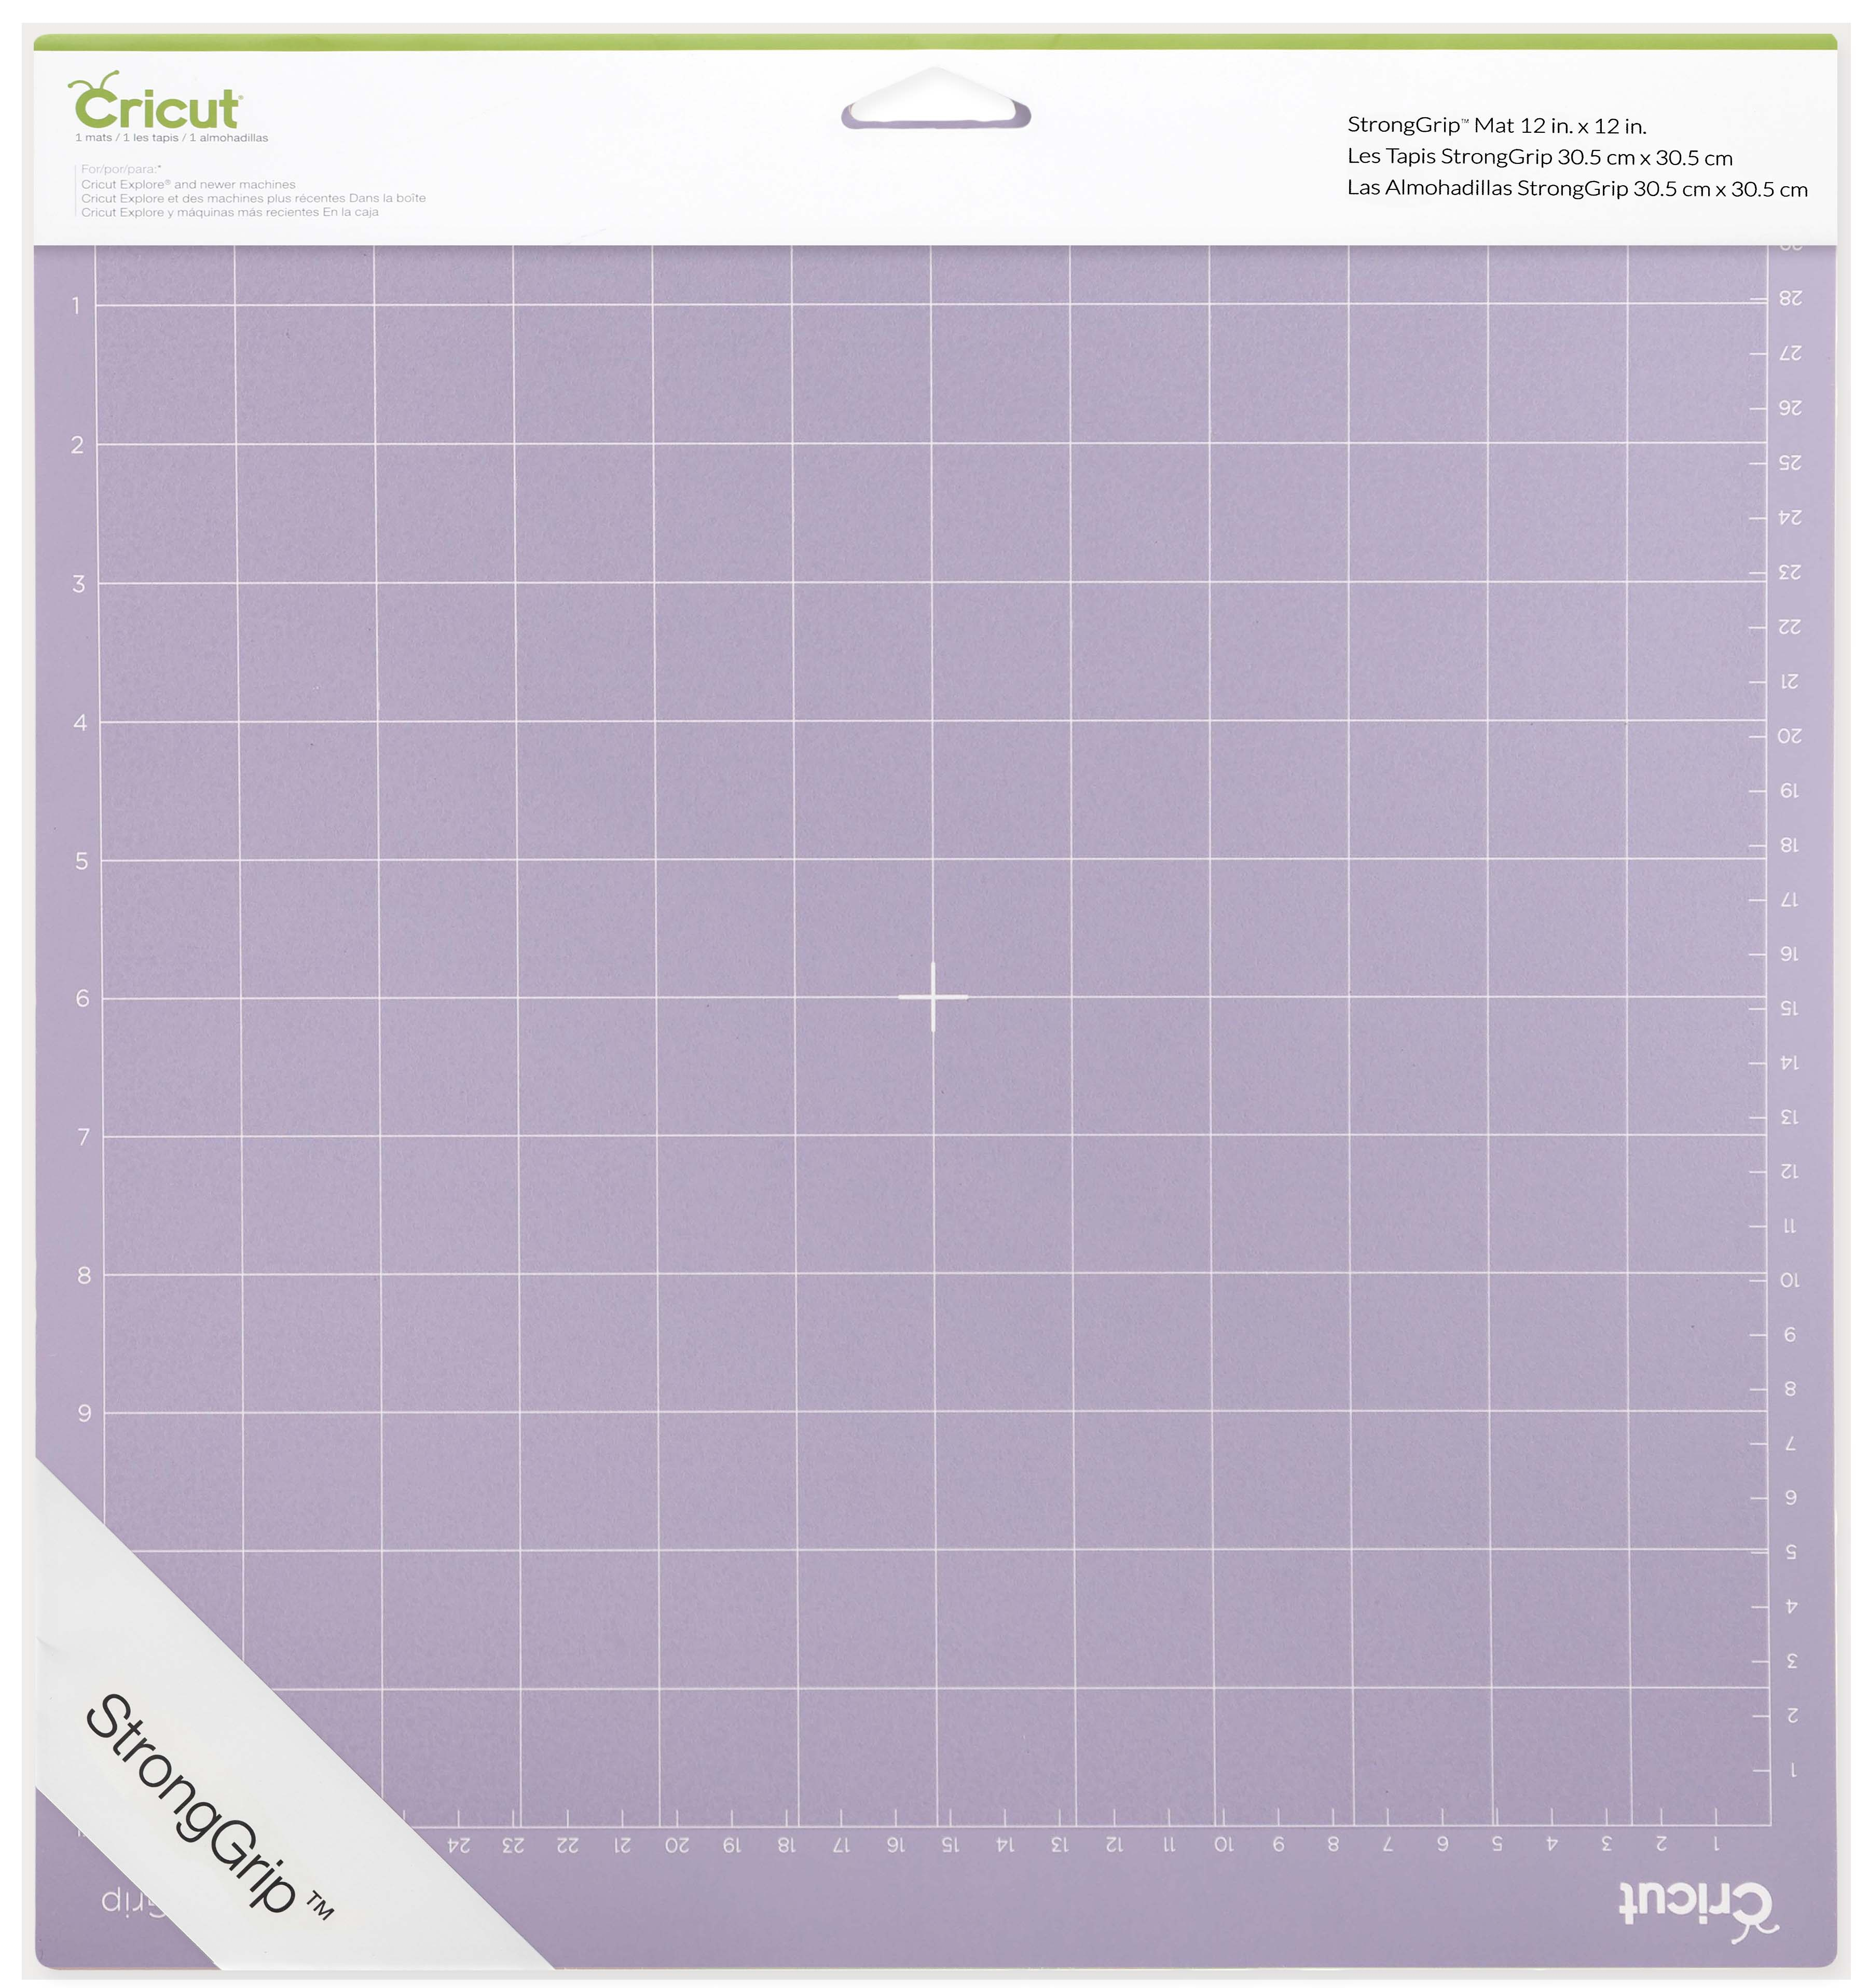 Variety Adhesive Quilting Cut Mats Replacement for Crafts、Sewing and All Arts. Ecraft Cutting Mat for Cricut Explore One//Air//Air 2 Maker(StrongGrip//StandardGrip//LightGrip,12X24inch 3 Pack